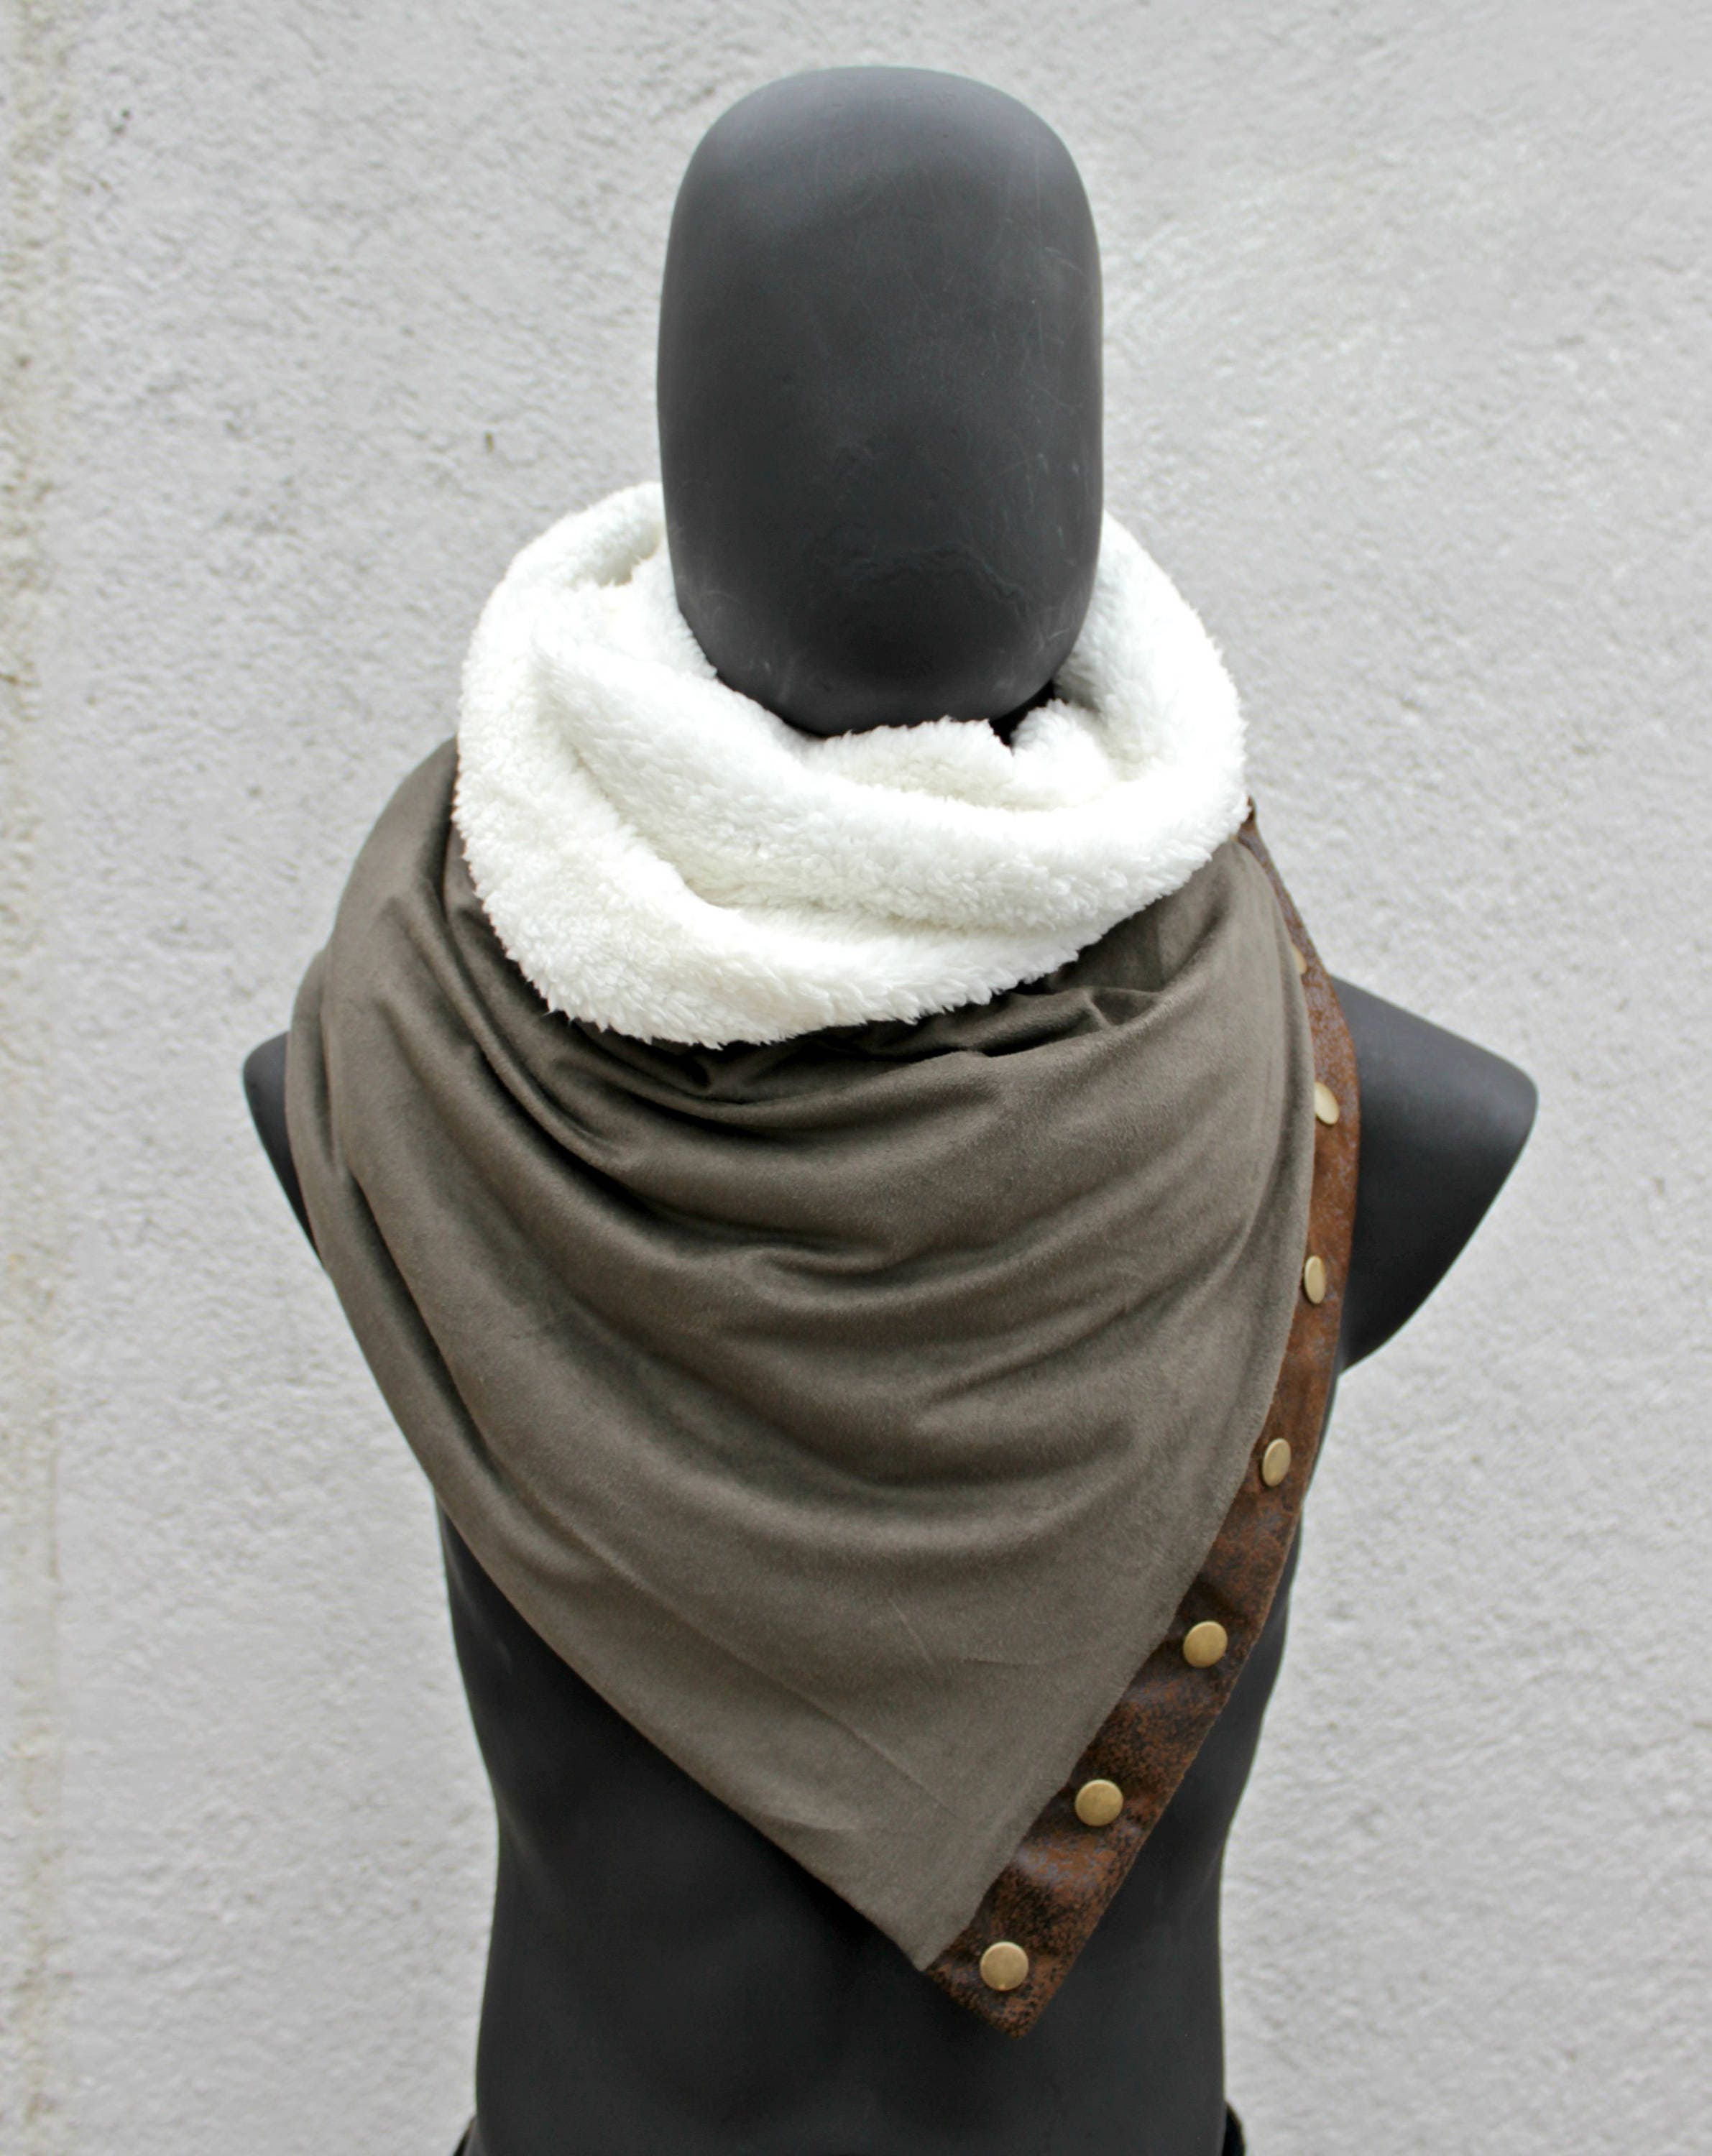 Men infinity scarf.Woman cowl,sage green faux suede & lamb fur,Vegan,metallic snaps,FAUX LEATHER,modern style,soft, cozy.Gift for her him